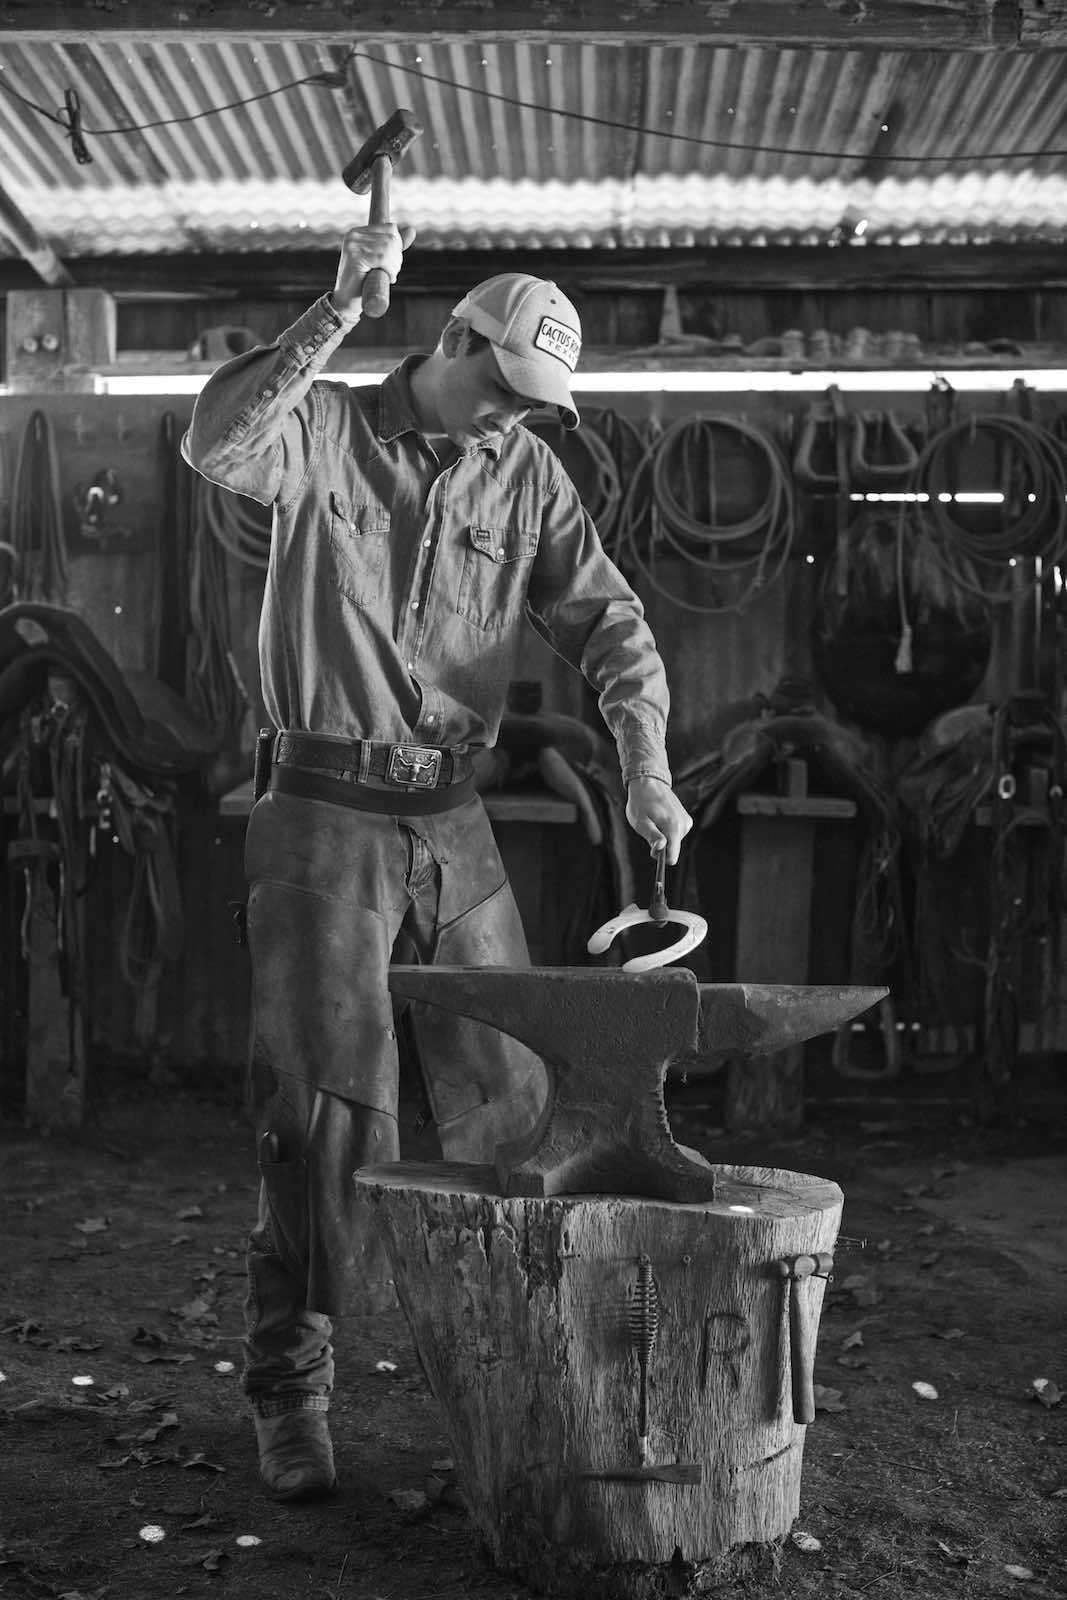 Jody Horton Photography - Welder hammering a horseshoe in a covered barn, shot in B&W.